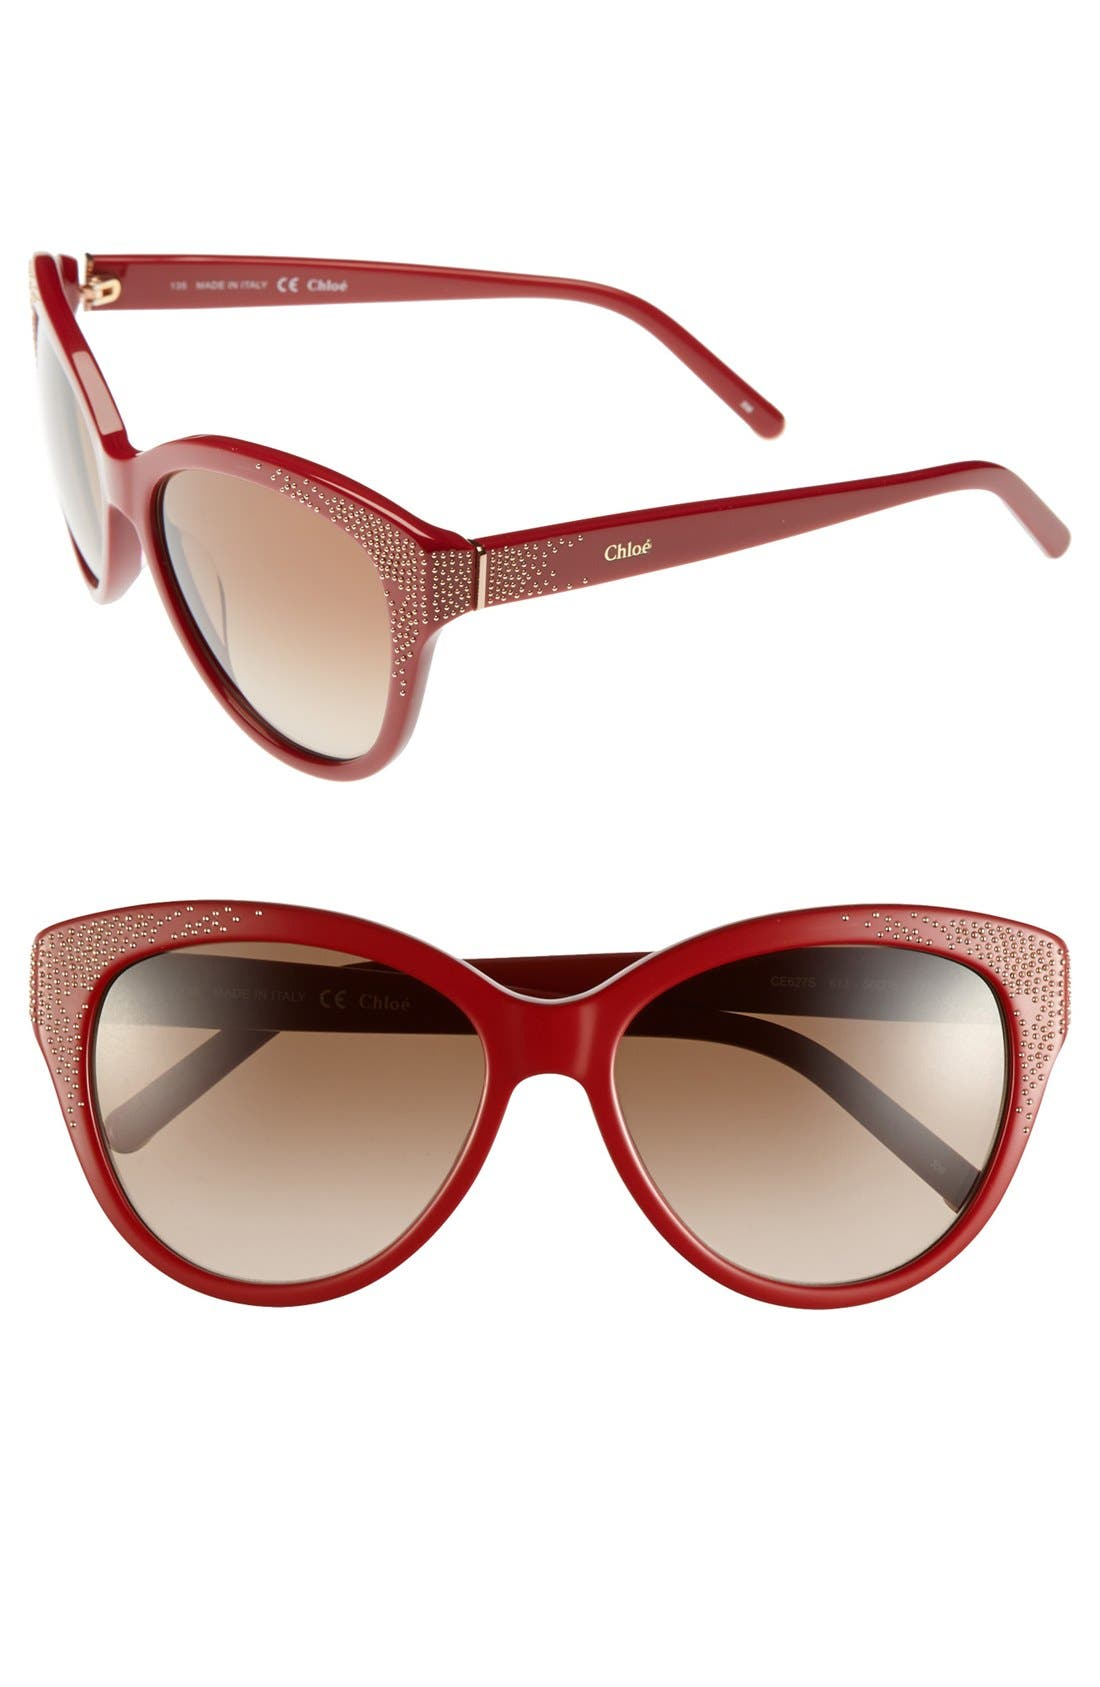 Alternate Image 1 Selected - Chloé 'Suzanna' 56mm Cat Eye Sunglasses